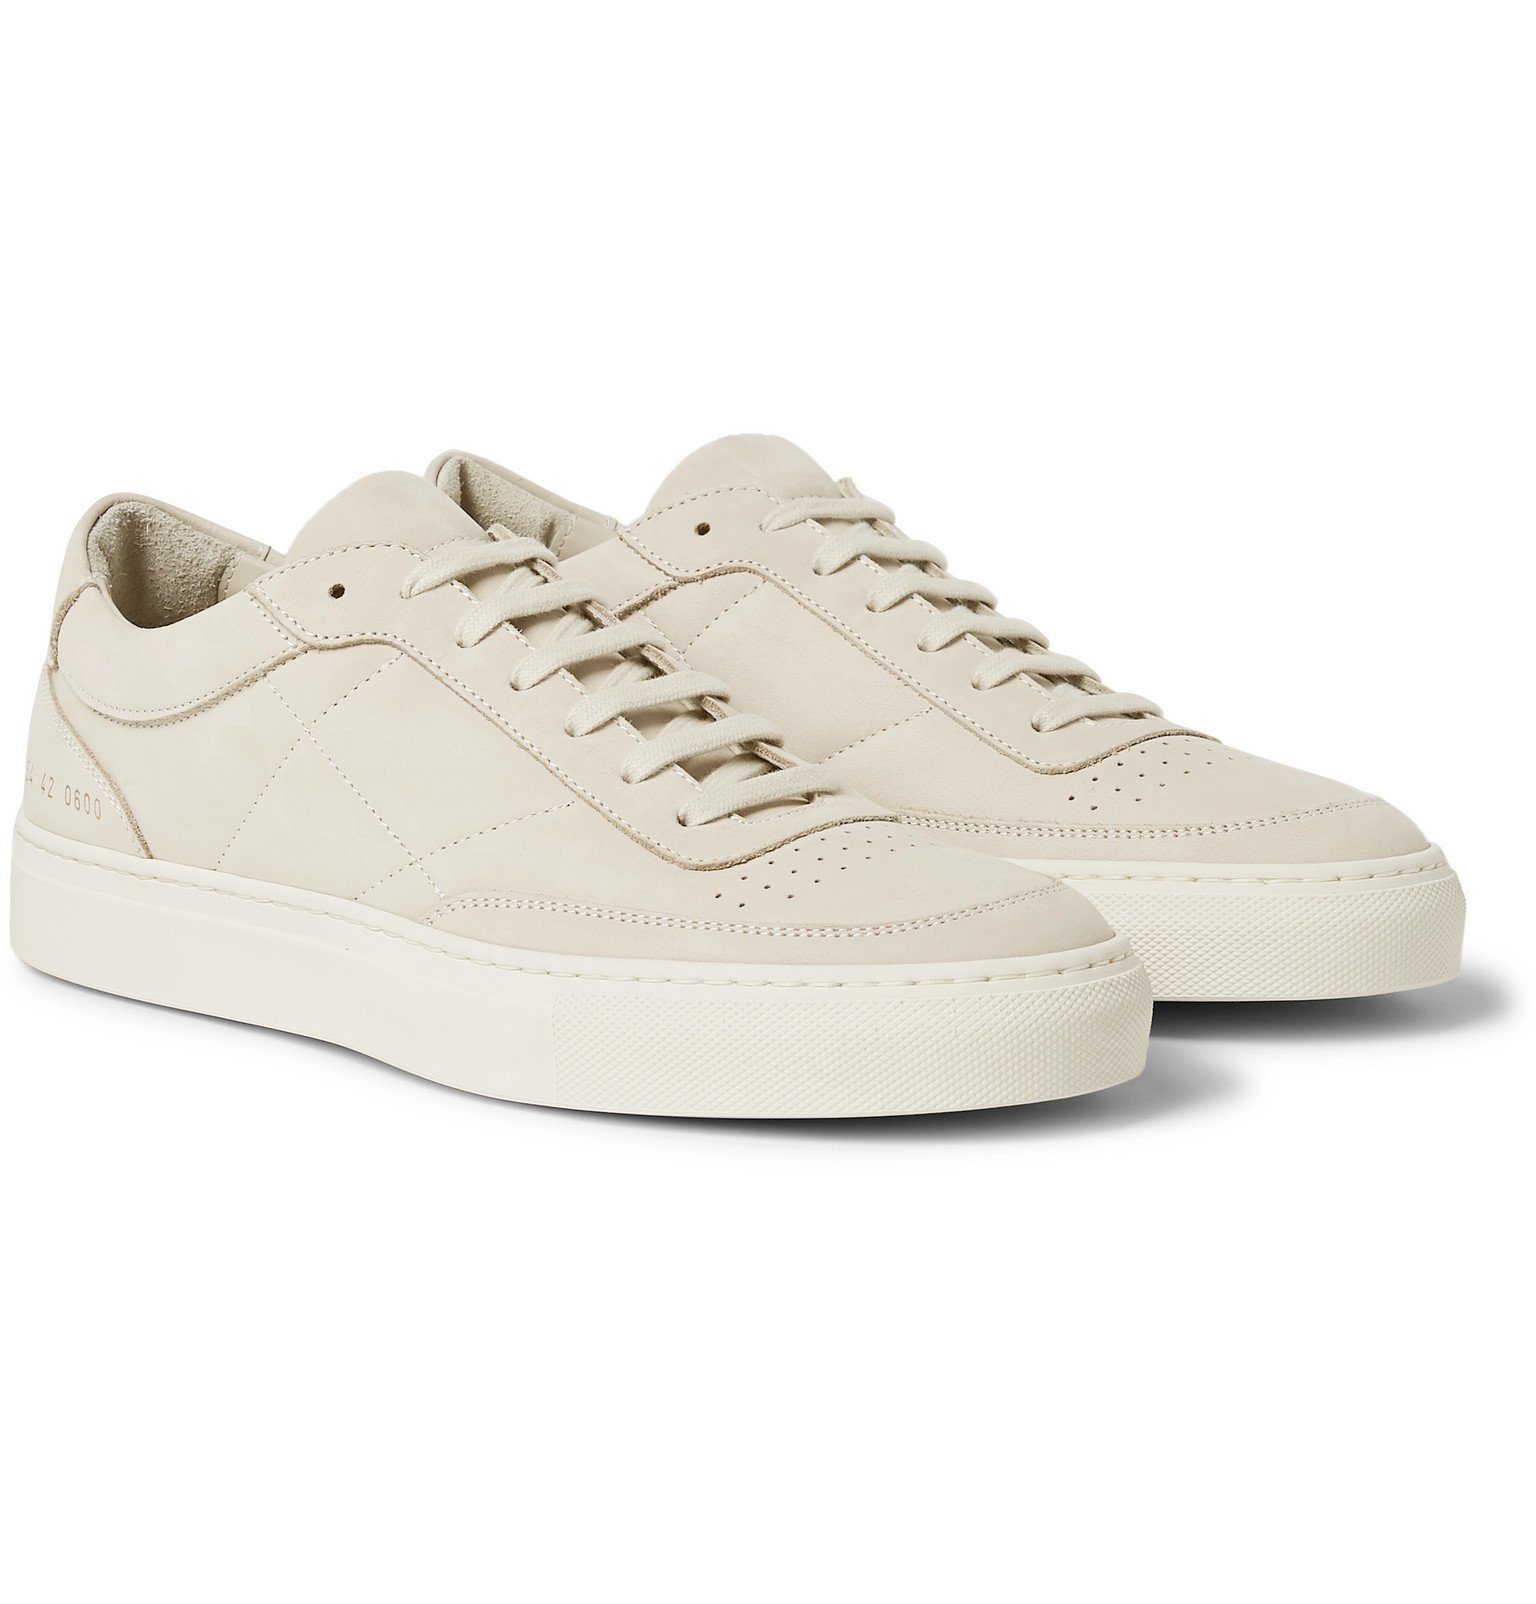 Common Projects - Resort Classic Nubuck Sneakers - Neutrals